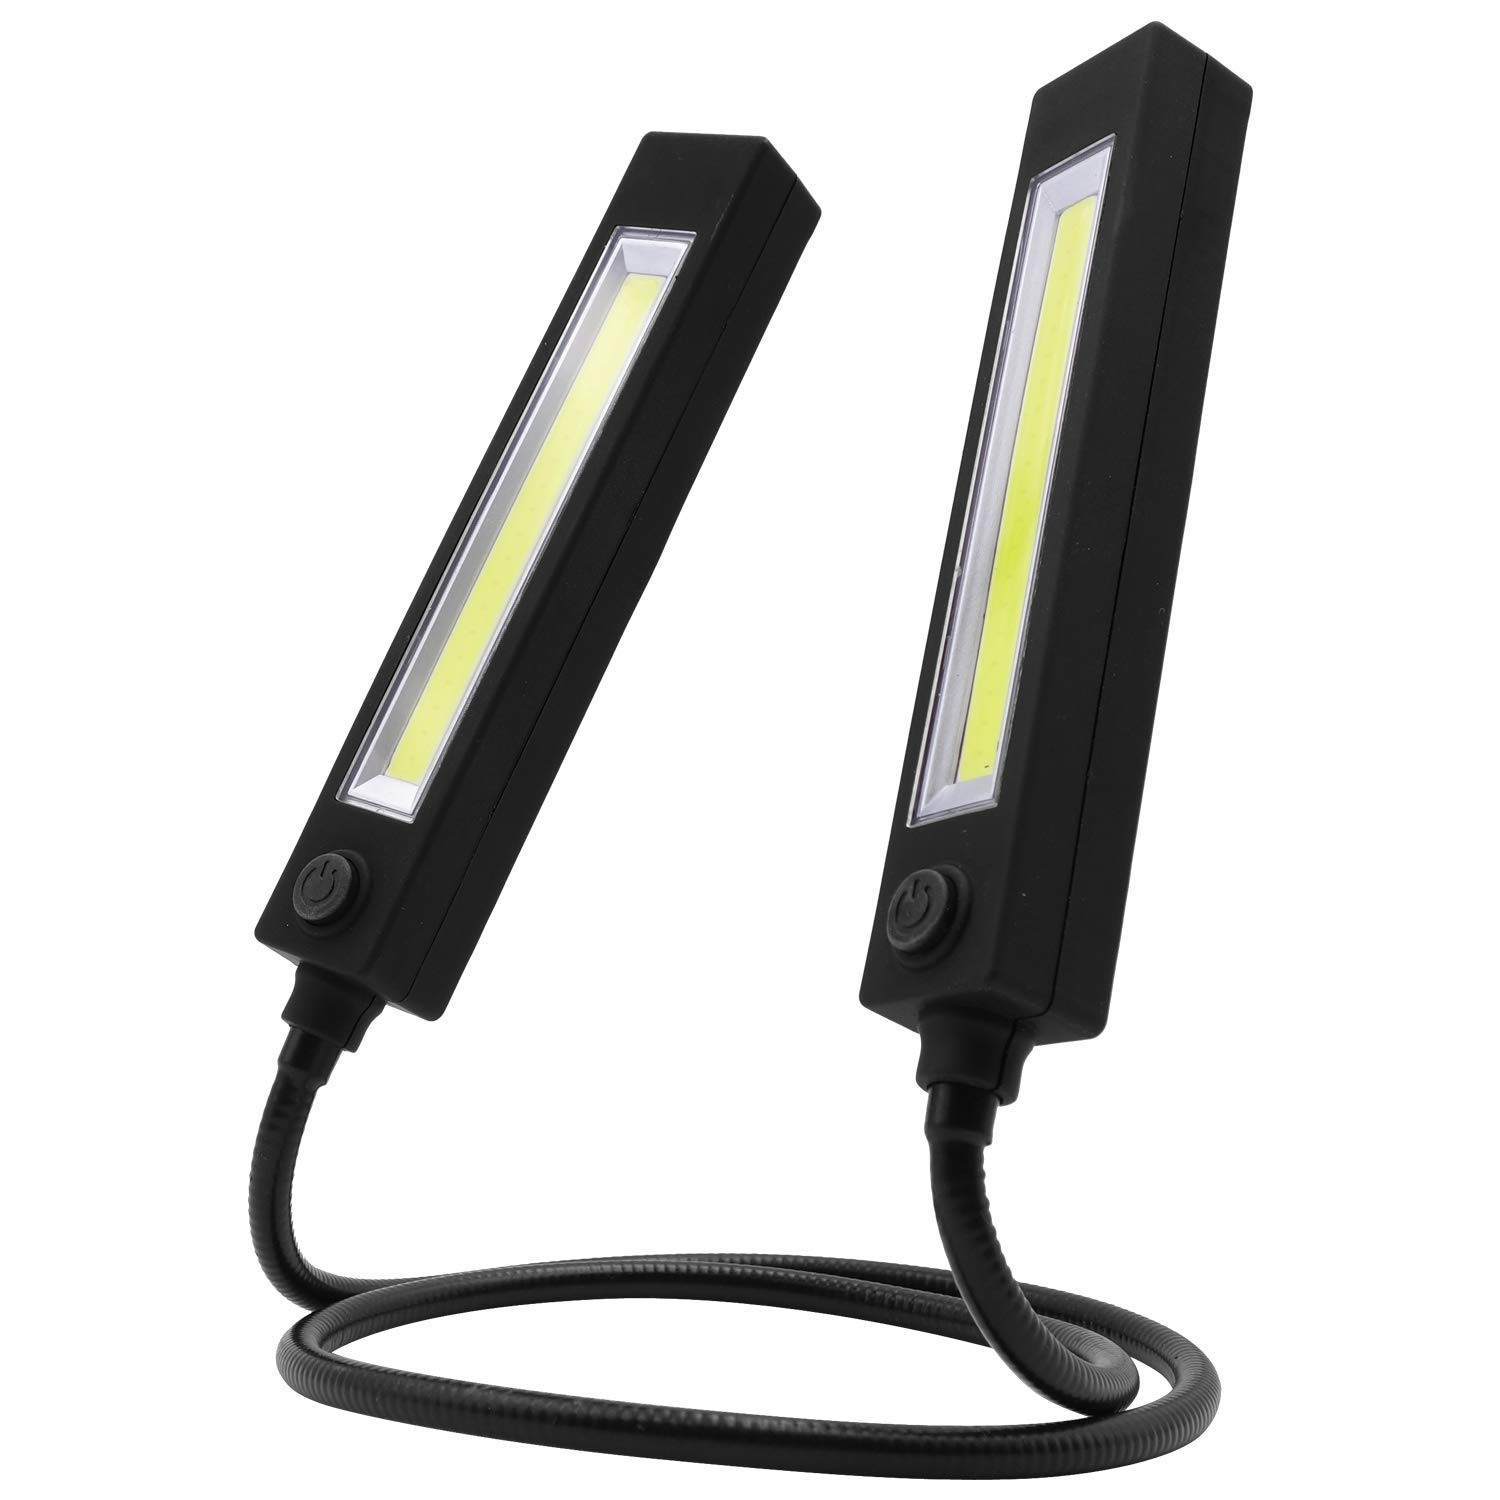 Hands Free Mobile Portable LED Work Reading Lights, great use for camping, hiking, jogging, fishing, home projects, as Desk Lamp, Flexible Long Arms Neck – 3 Settings; High, Low, Blinking, Rectangular